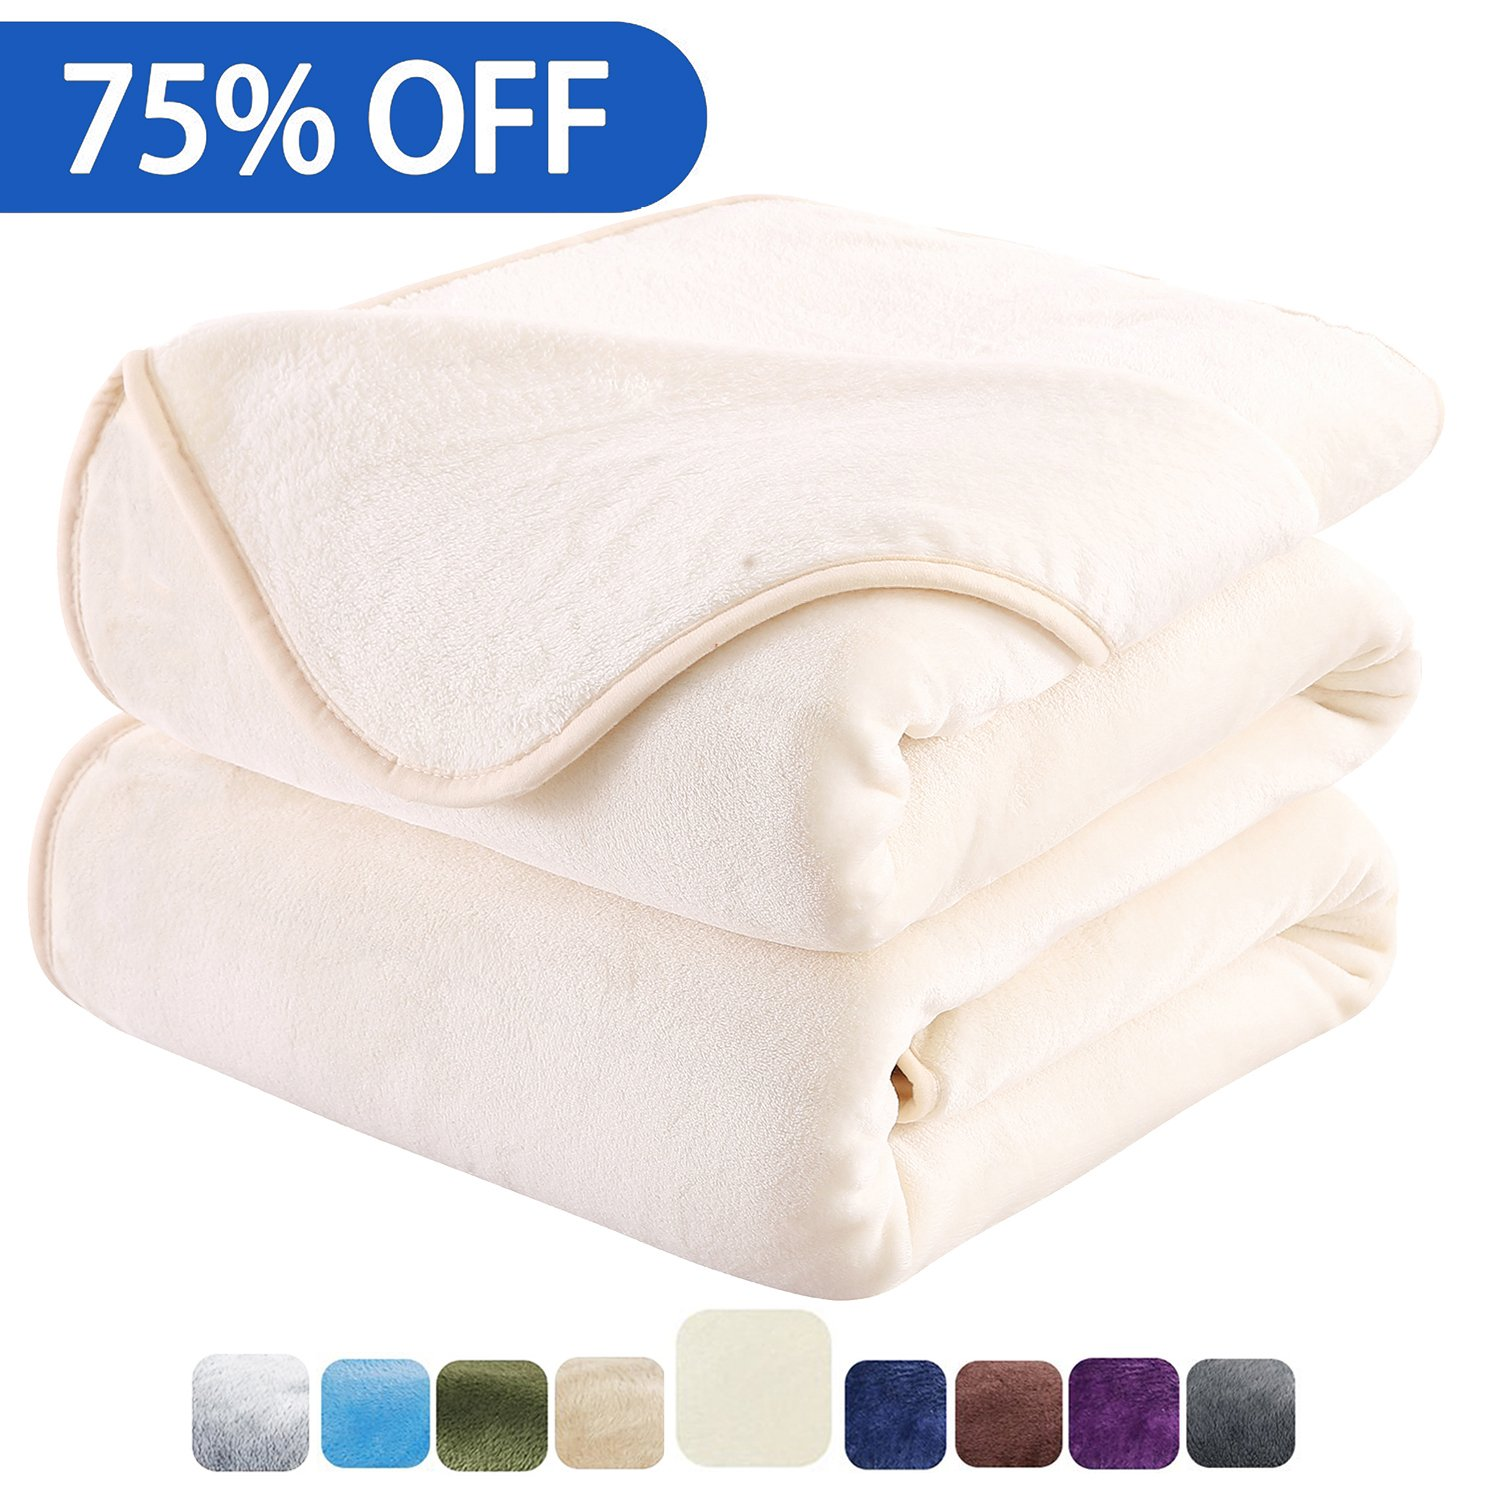 HOZY Fleece Blanket King Size Luxury Super Soft Warm Fuzzy Microplush Lightweight Hypoallergenic 350GSM Blankets For Bed Couch Sofa (King,Ivory)